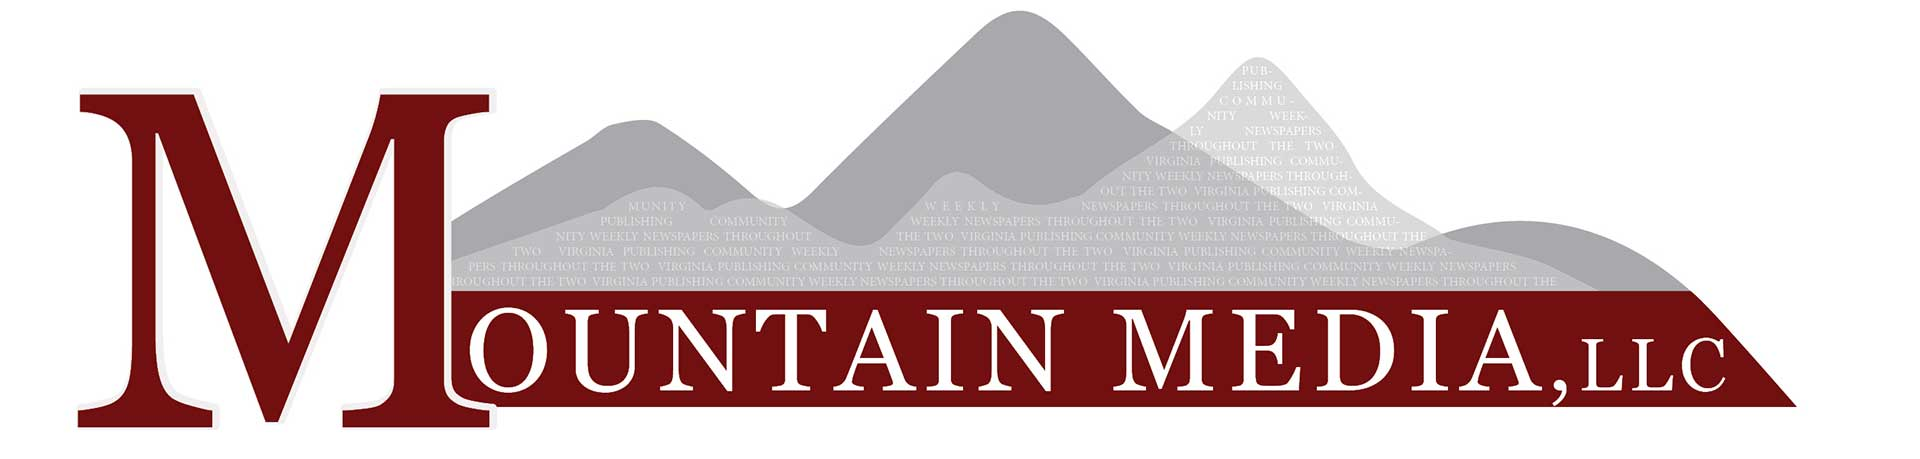 Mountain Media News